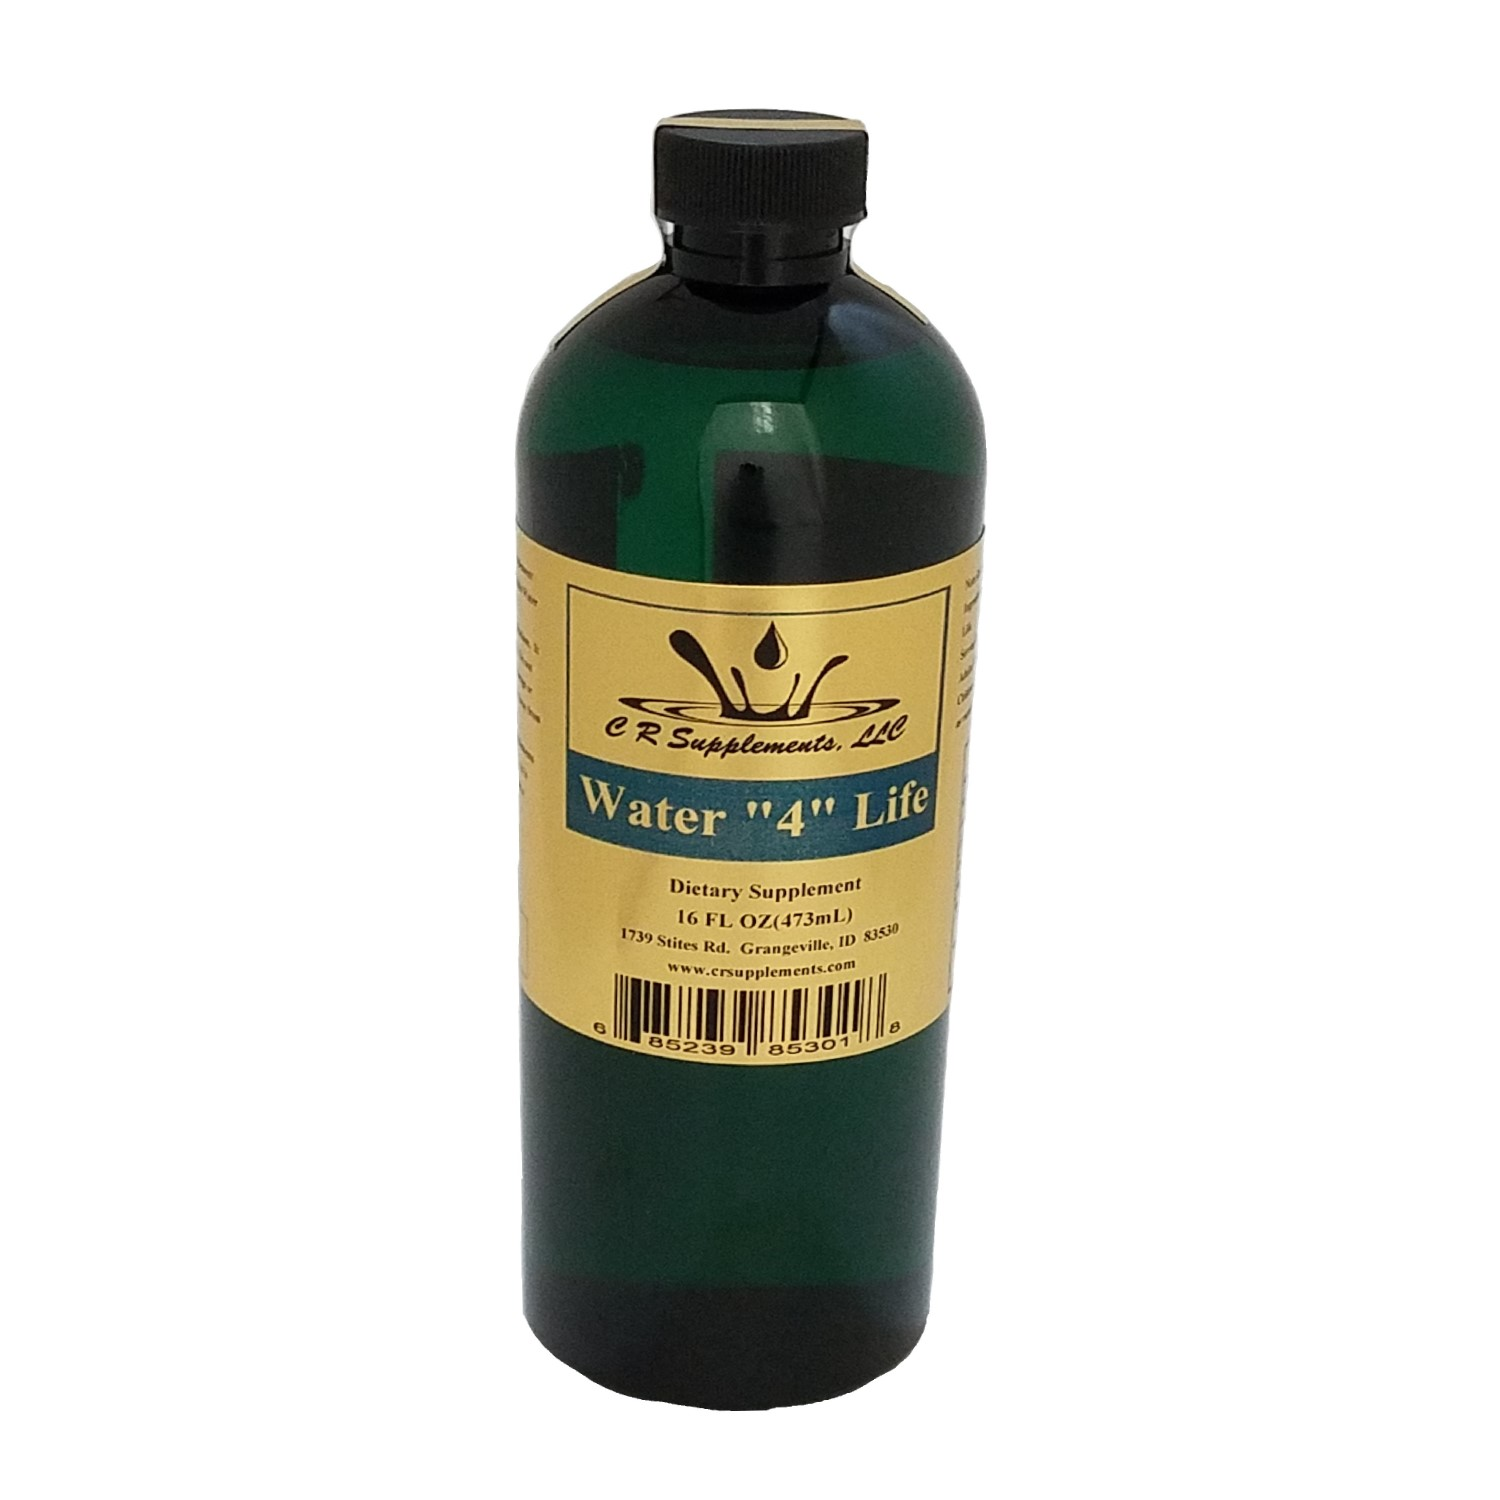 Water 4 Life Dietary Supplement, Water 4 Life, WaterOz Water 4 Life Replacement, Liquid dietary supplement, Kosher of America approved, KOA approved, Pareve, vegan application, elemental mineral, flexible liquid mineral, maximum absorption